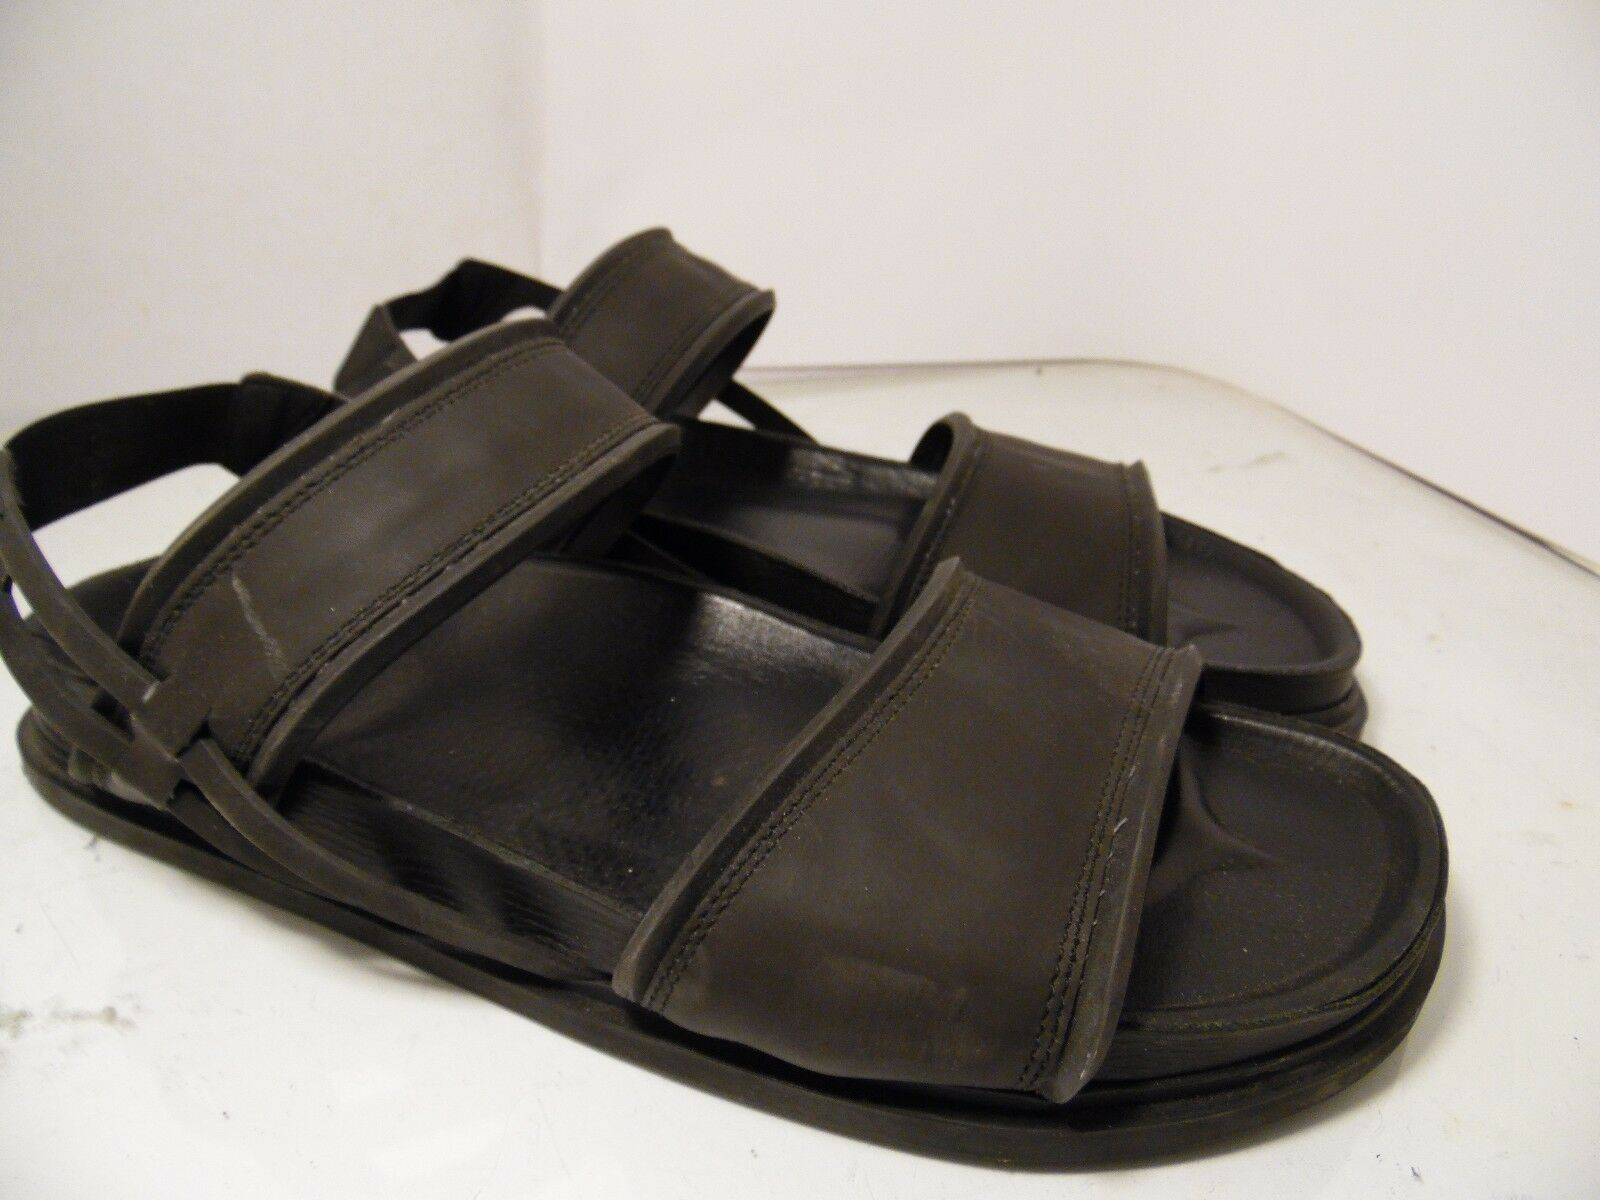 8f9ae3b44f8c Zara Man Black Rubber Sandals Fisherman Fisherman Fisherman Sling Back Mens  Size 45 Made in Spain ...